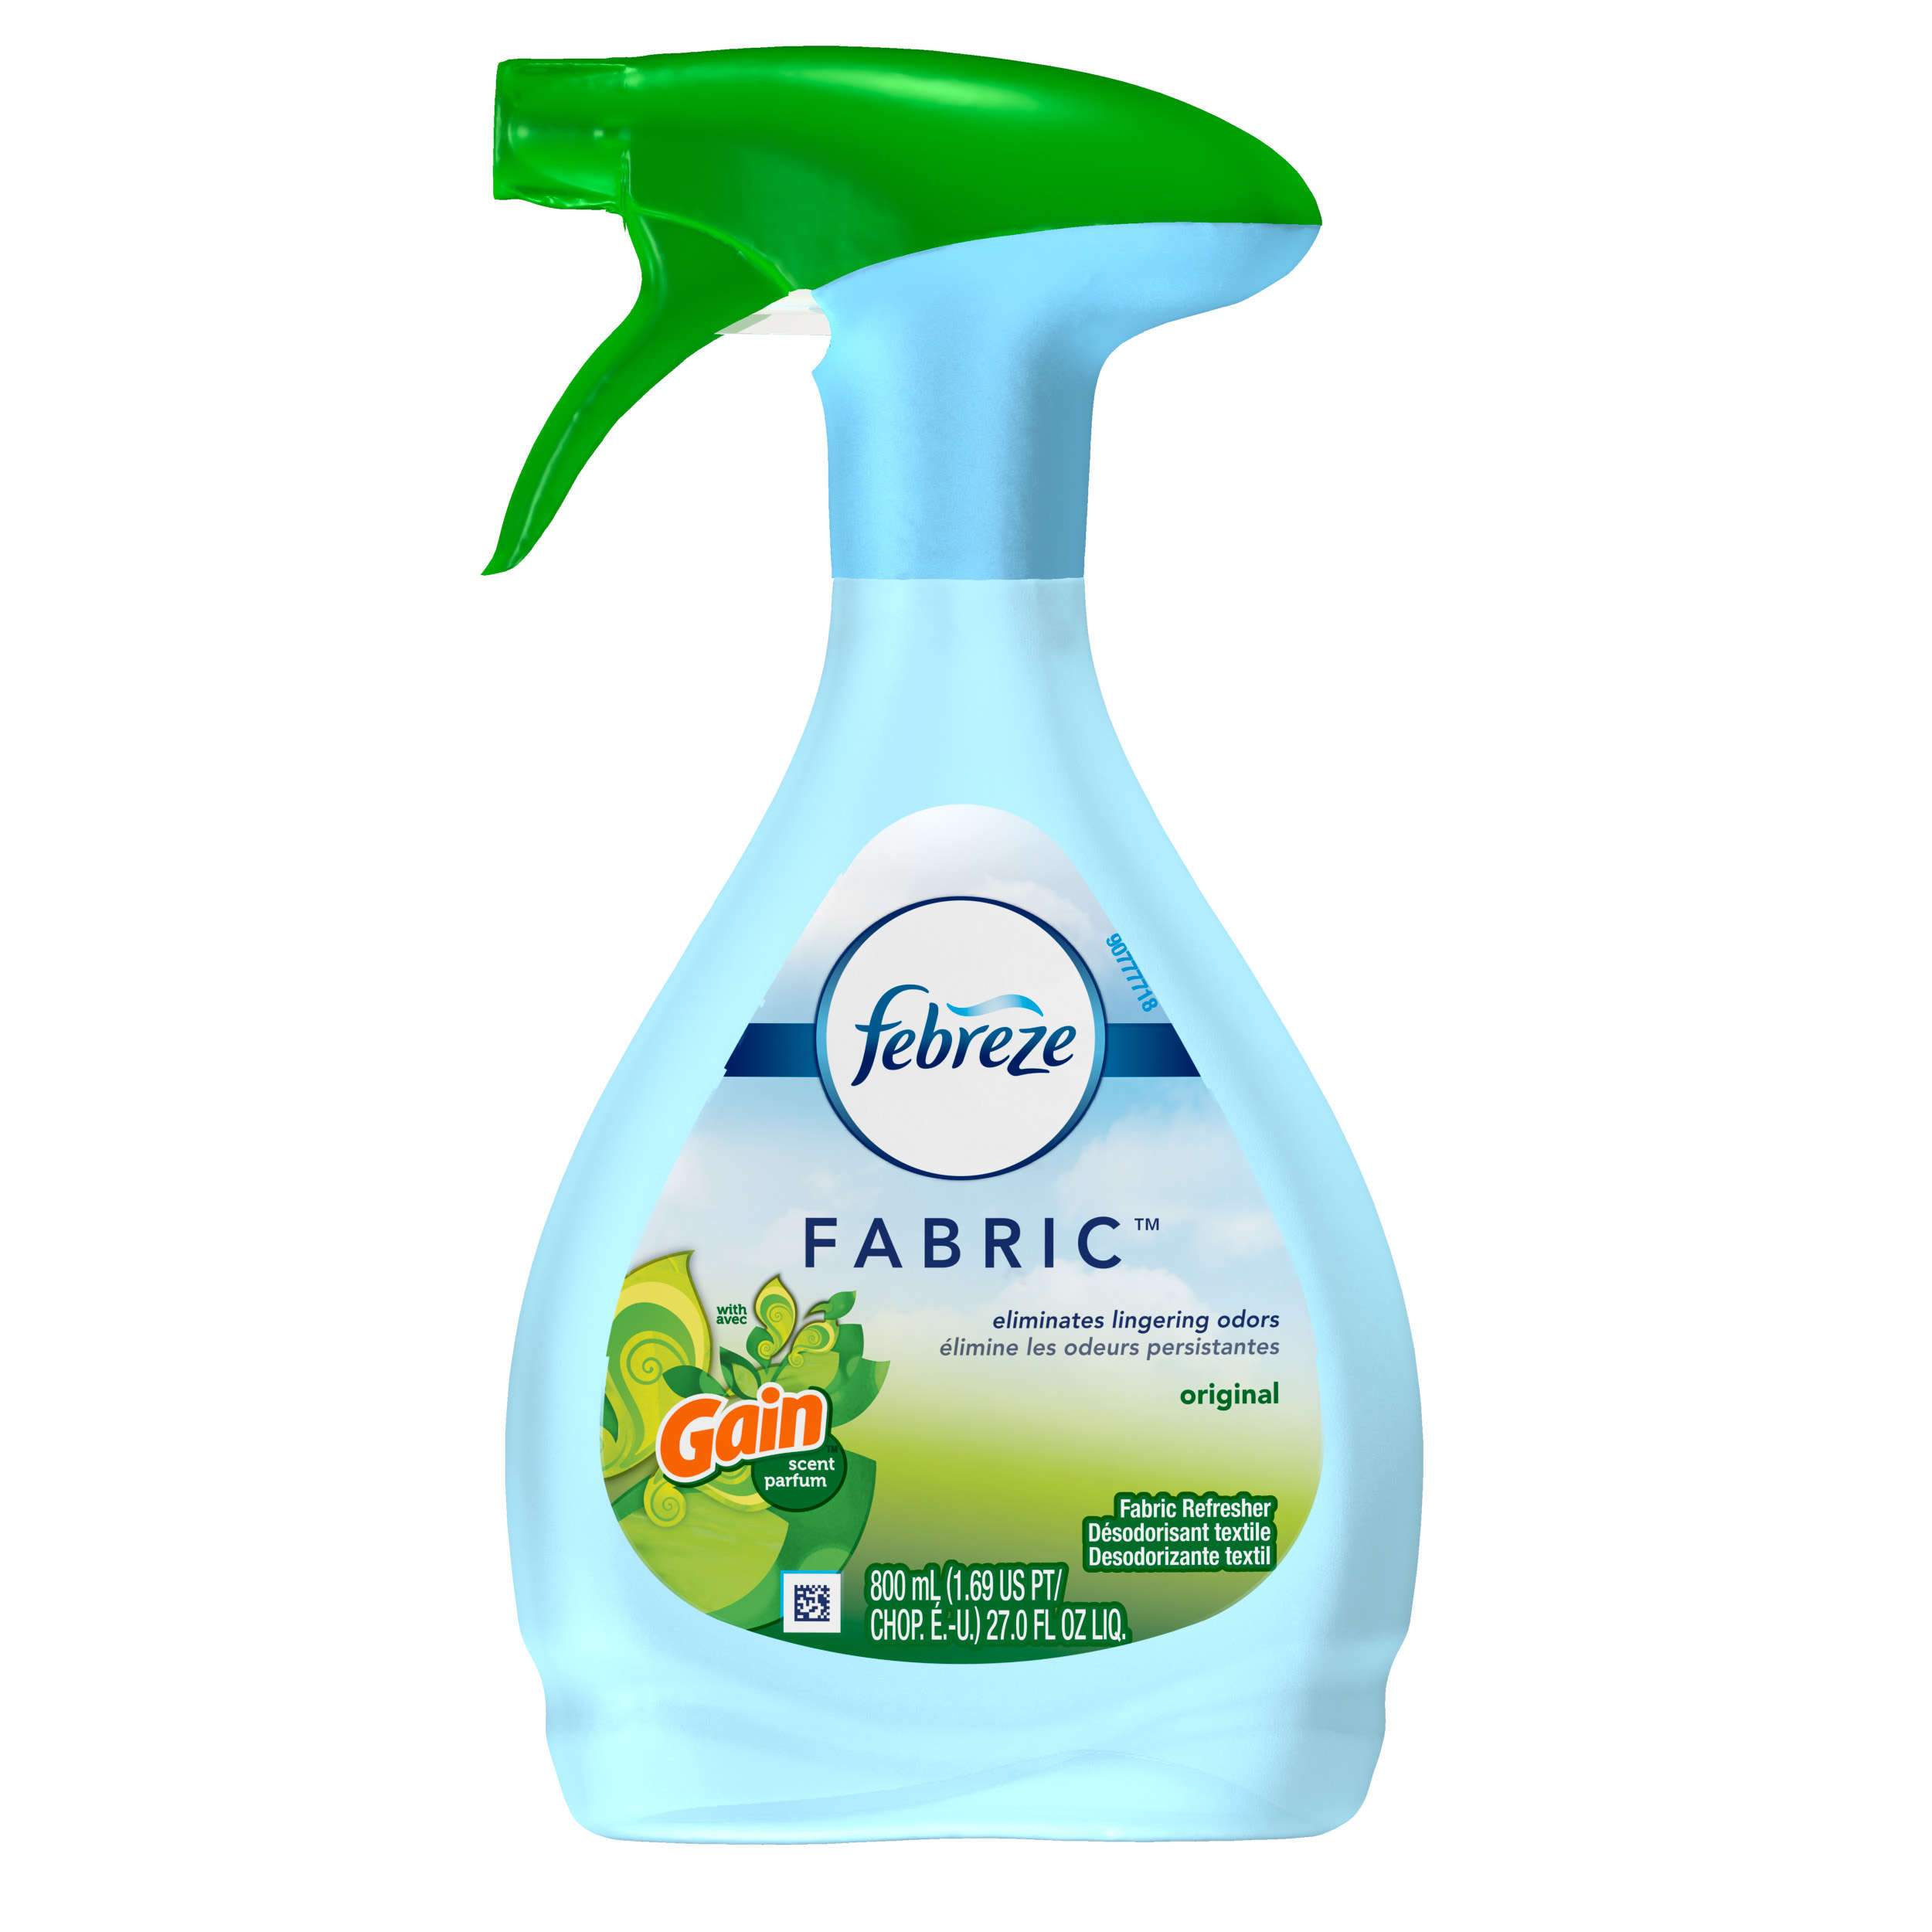 Febreze FABRIC Refresher with Gain, Original, 1 Count, 27 oz